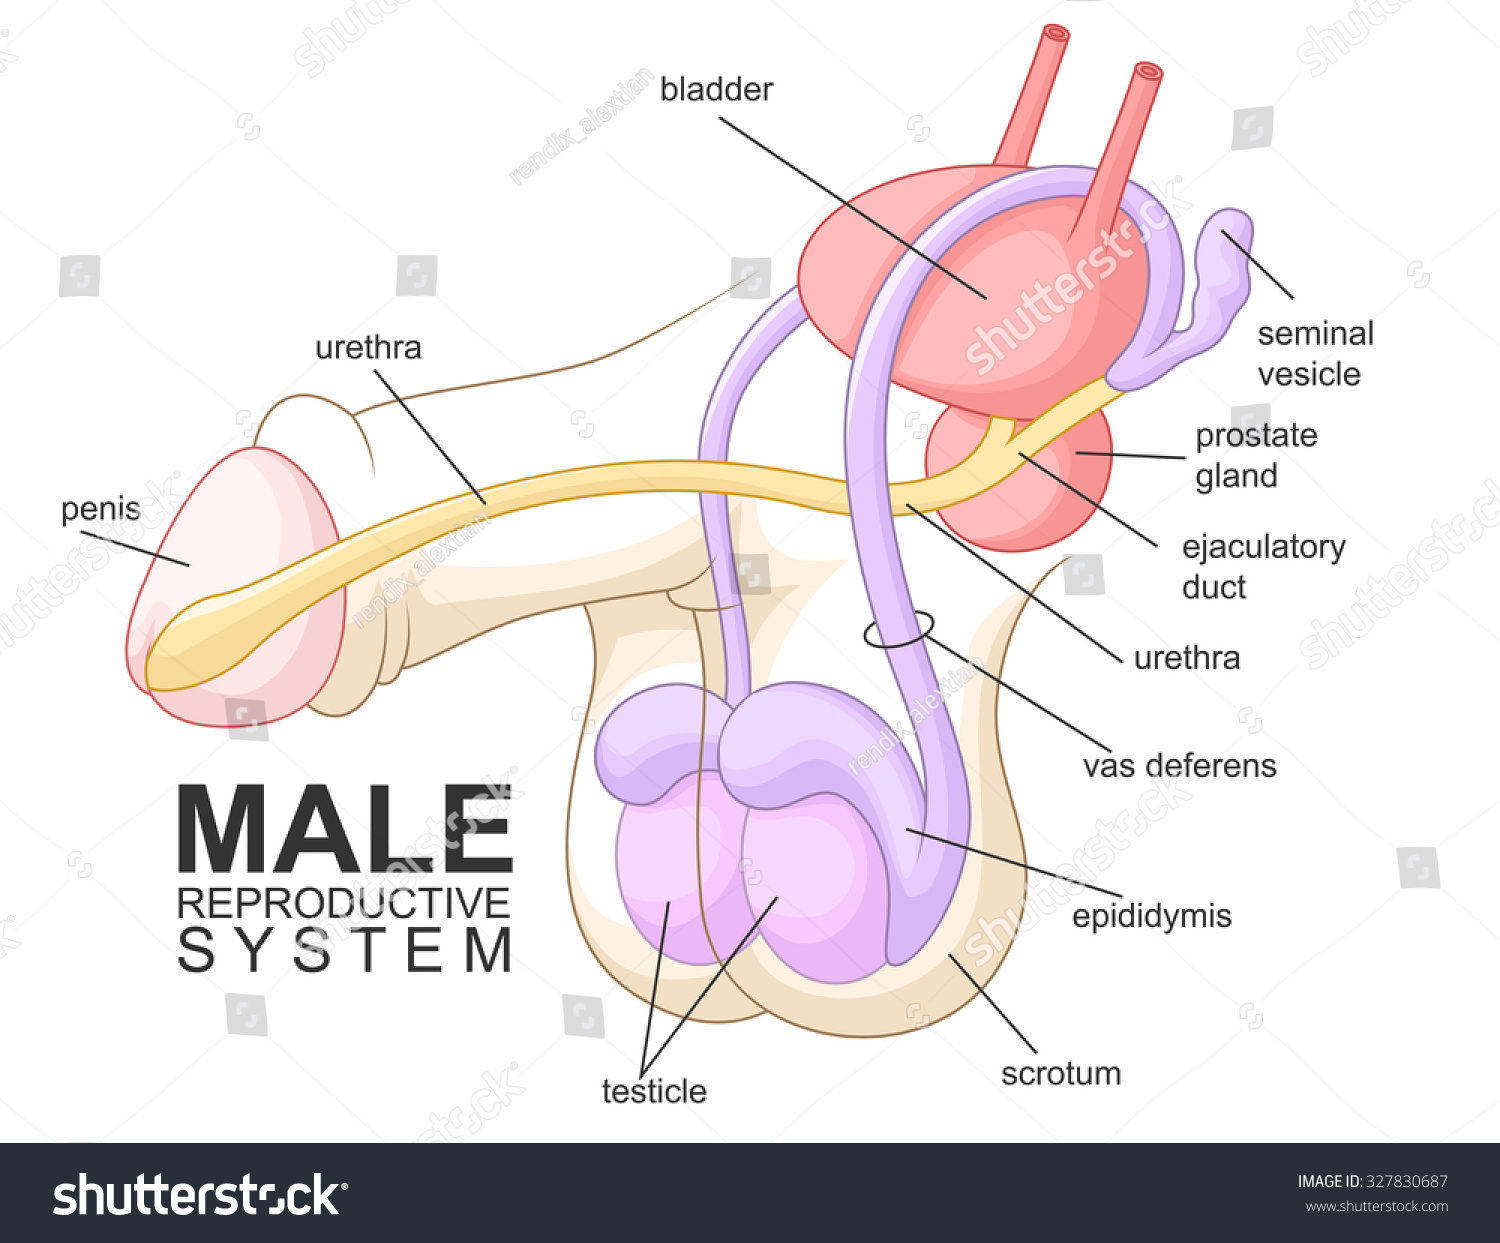 male reproductive system cartoon stock illustration 327830687, Human Body